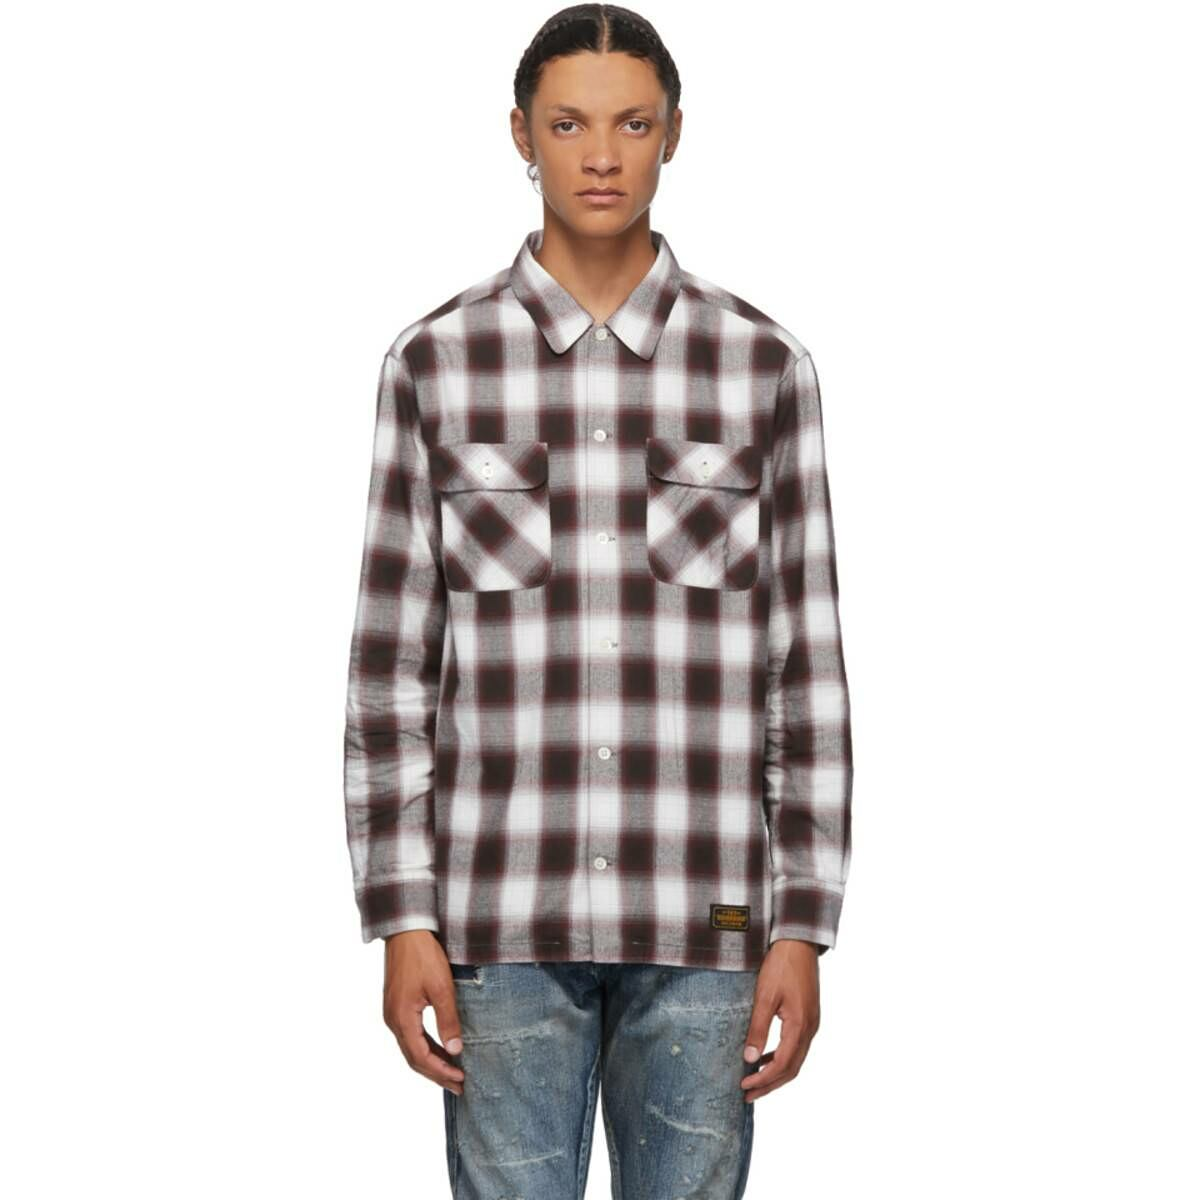 Neighborhood Red BandC Shirt Ssense USA MEN Men FASHION Mens SHIRTS